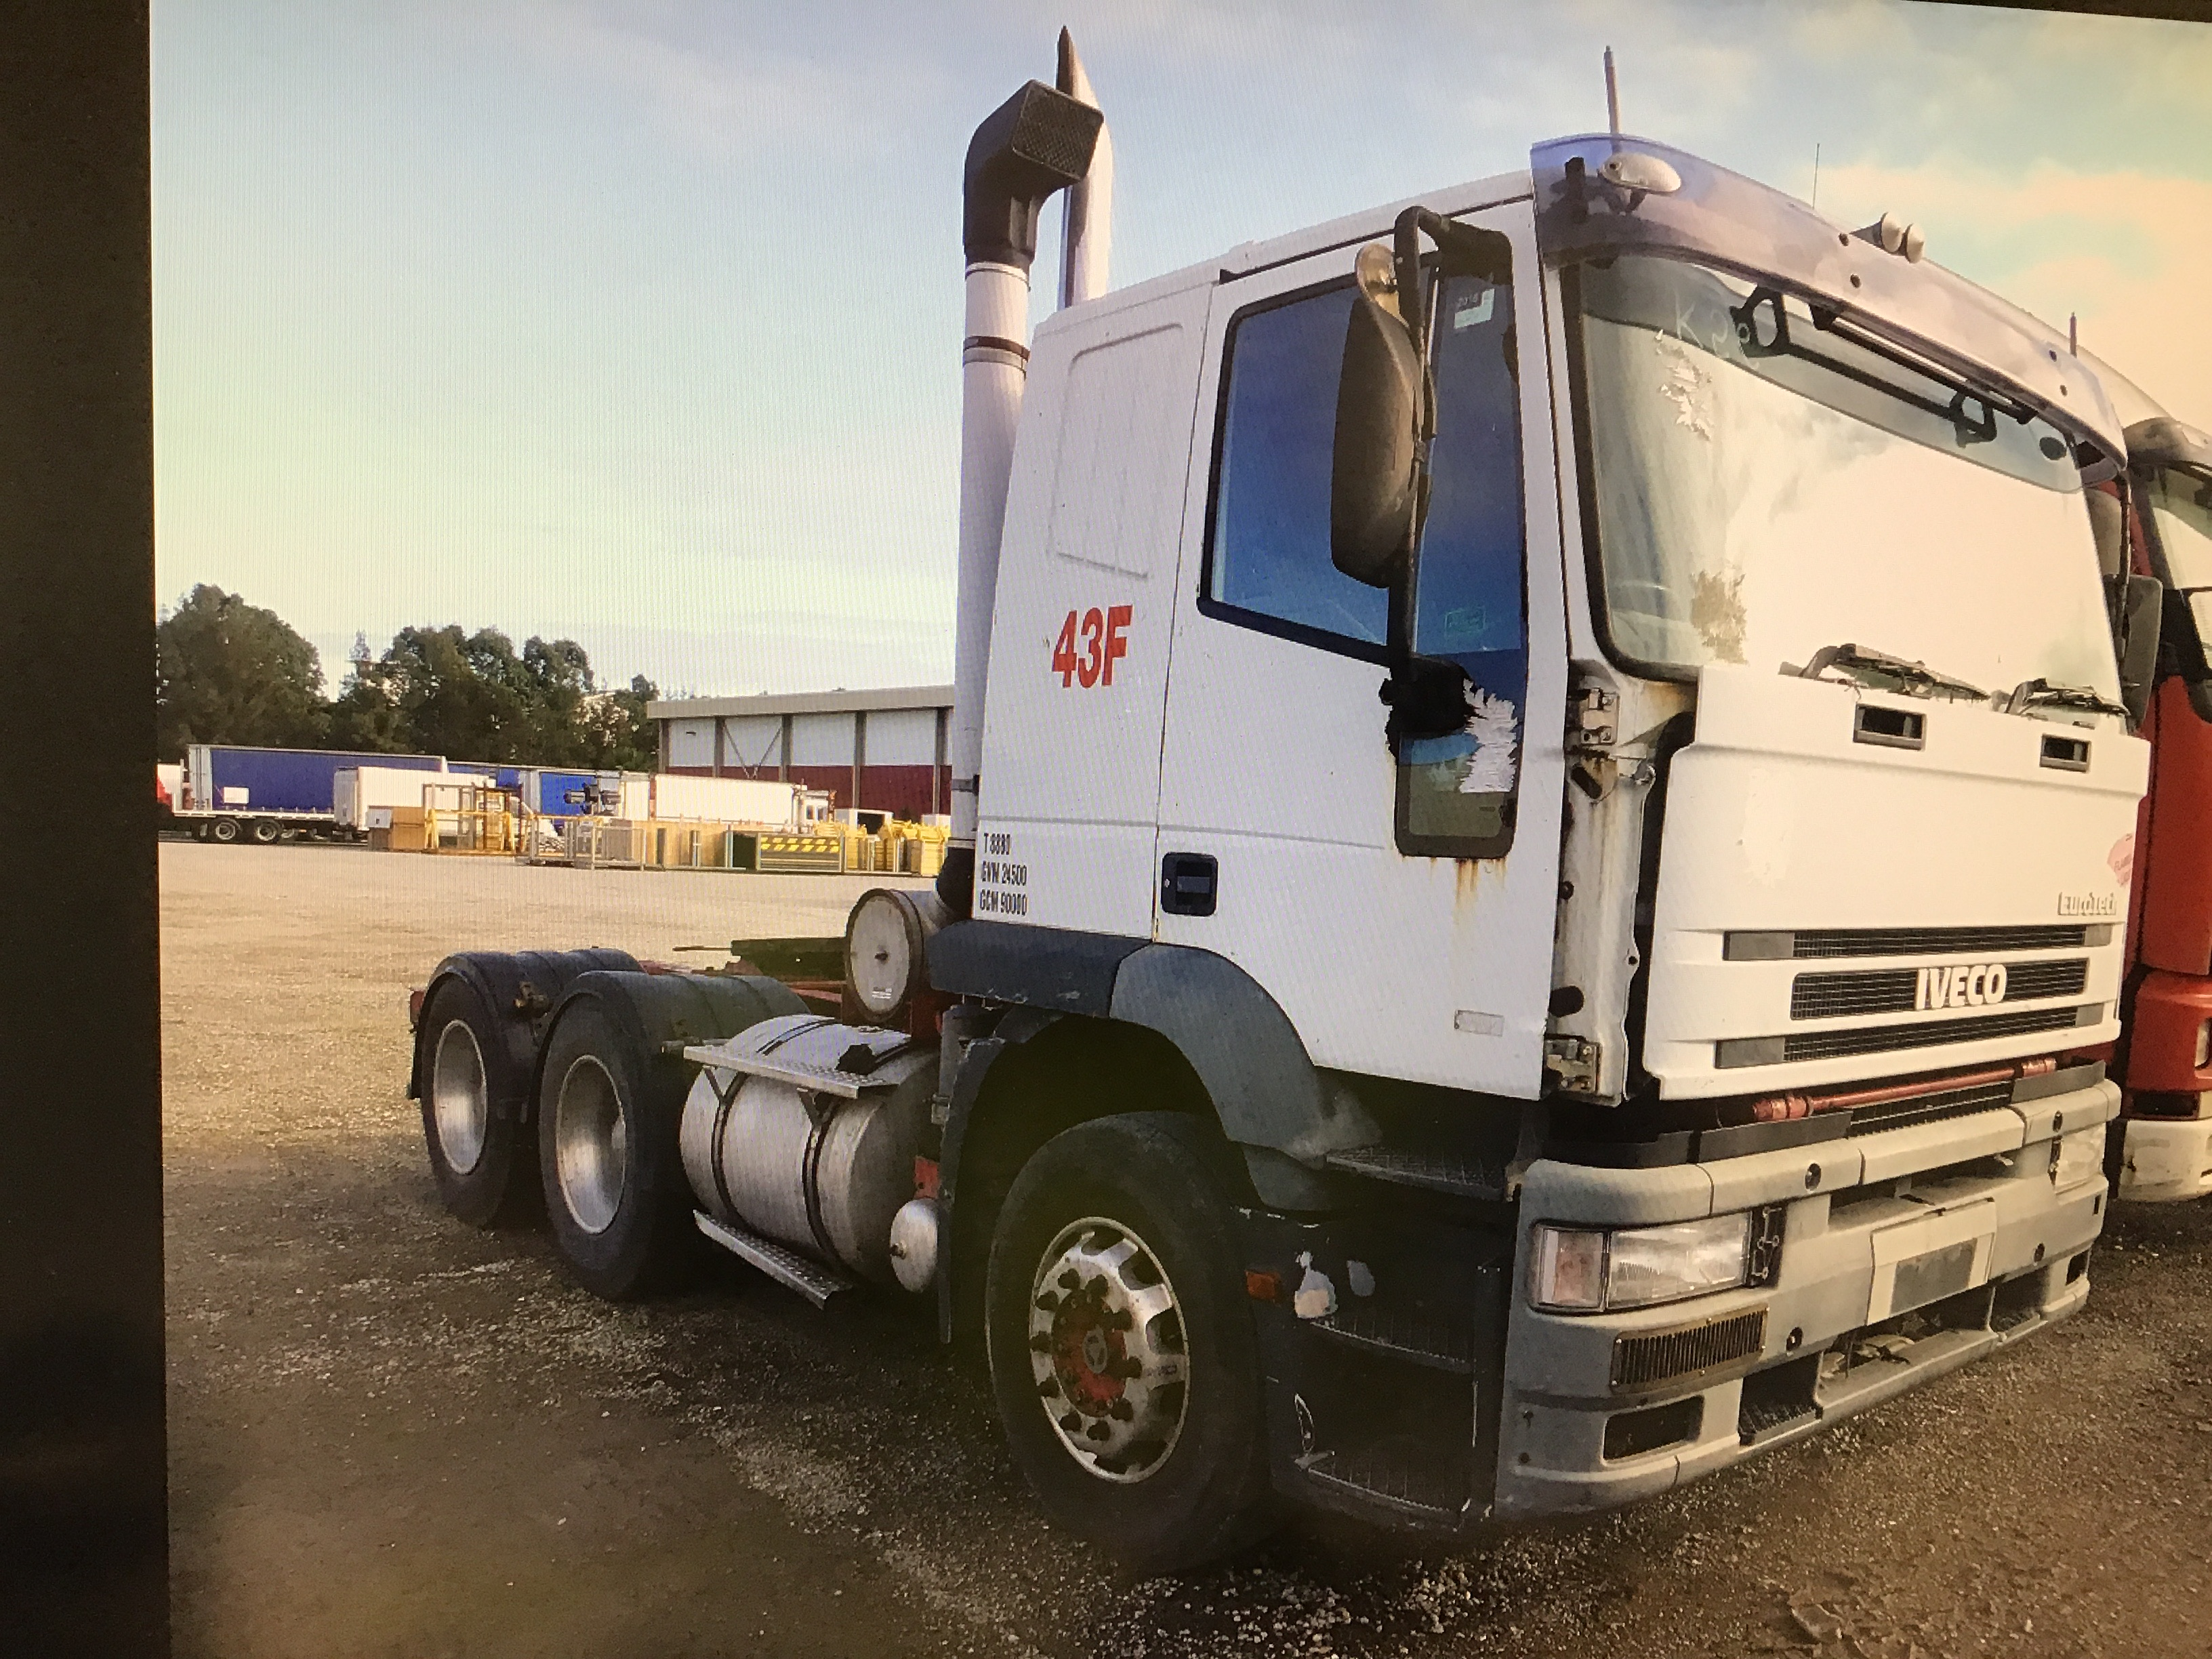 1998 Iveco Eurotech 6 x 4 Prime Mover Truck